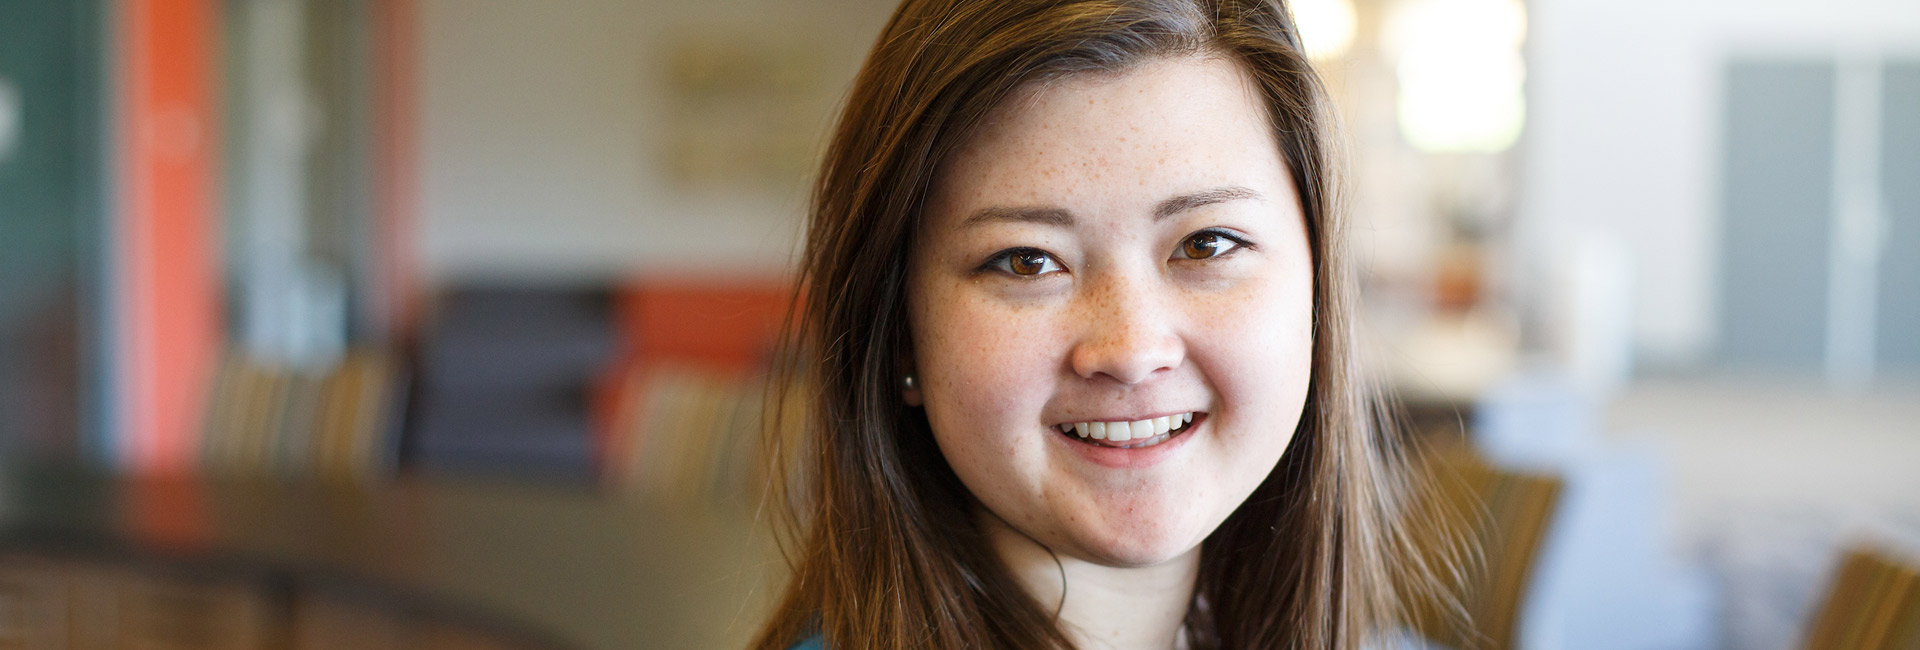 Alumna Credits Support, Opportunities in Chasing Dream